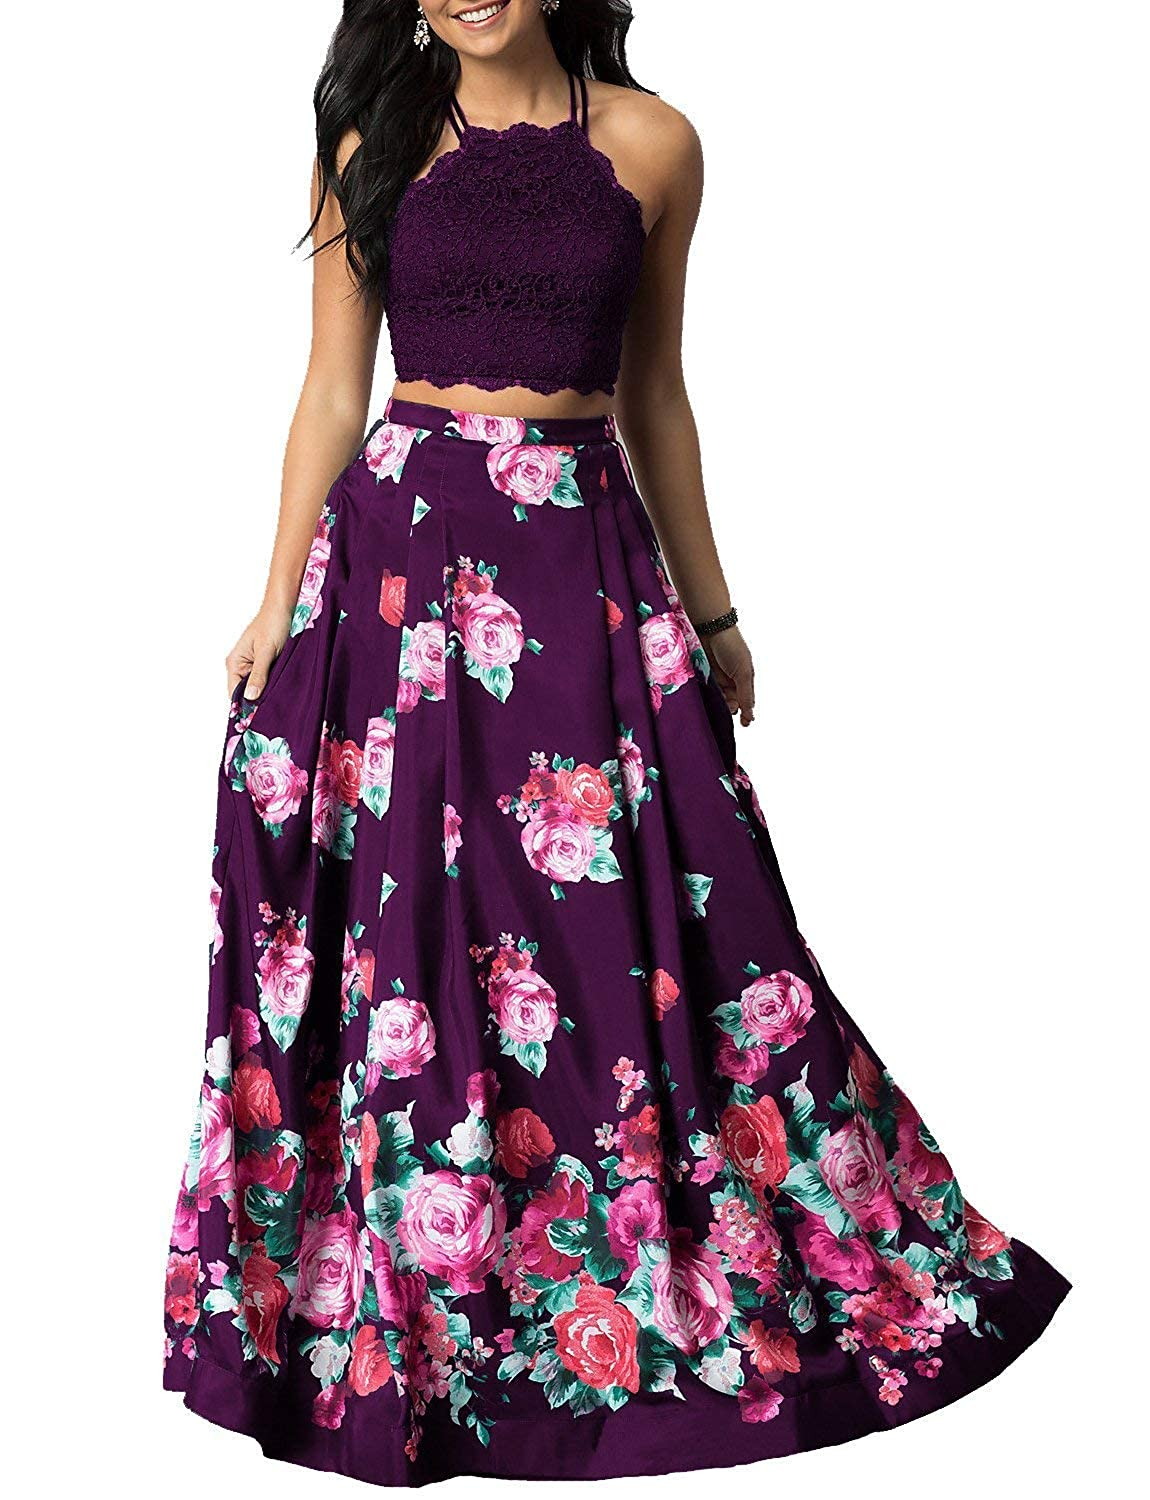 Grape Sulidi Women's Halter Two Pieces Floral Printed Prom Dresses Long Satin Pleated Evening Formal Gown C095